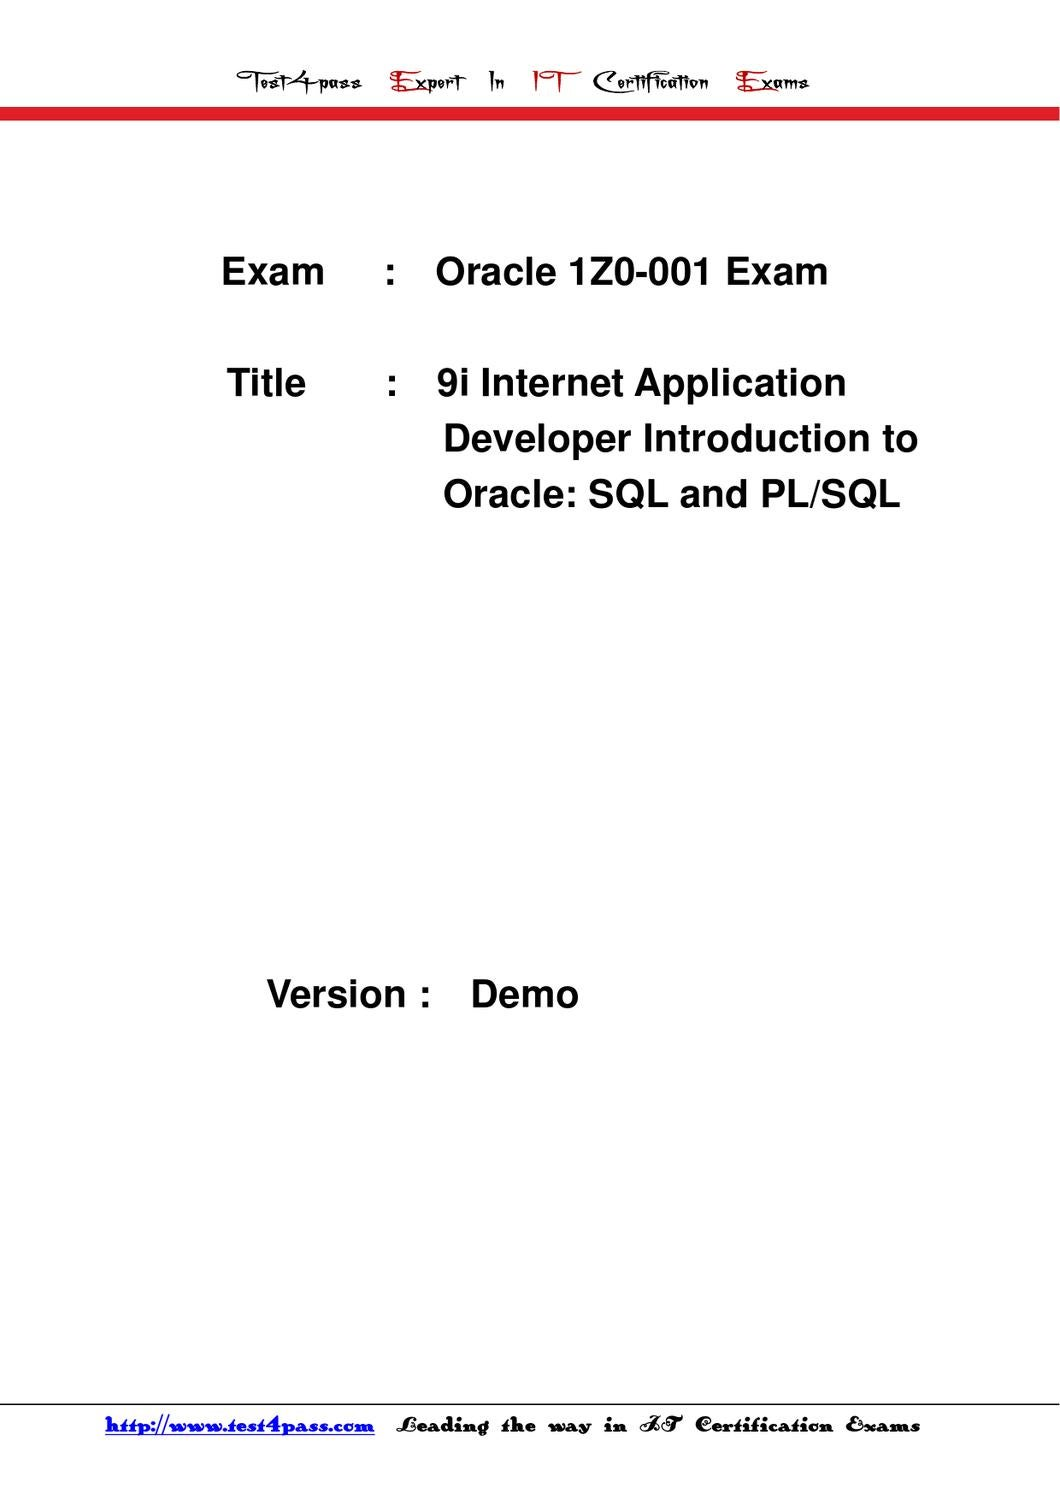 Test4pass oracle test 1z0 001 exam dumps questions answers by test4pass oracle test 1z0 001 exam dumps questions answers by tonic jackie issuu xflitez Image collections